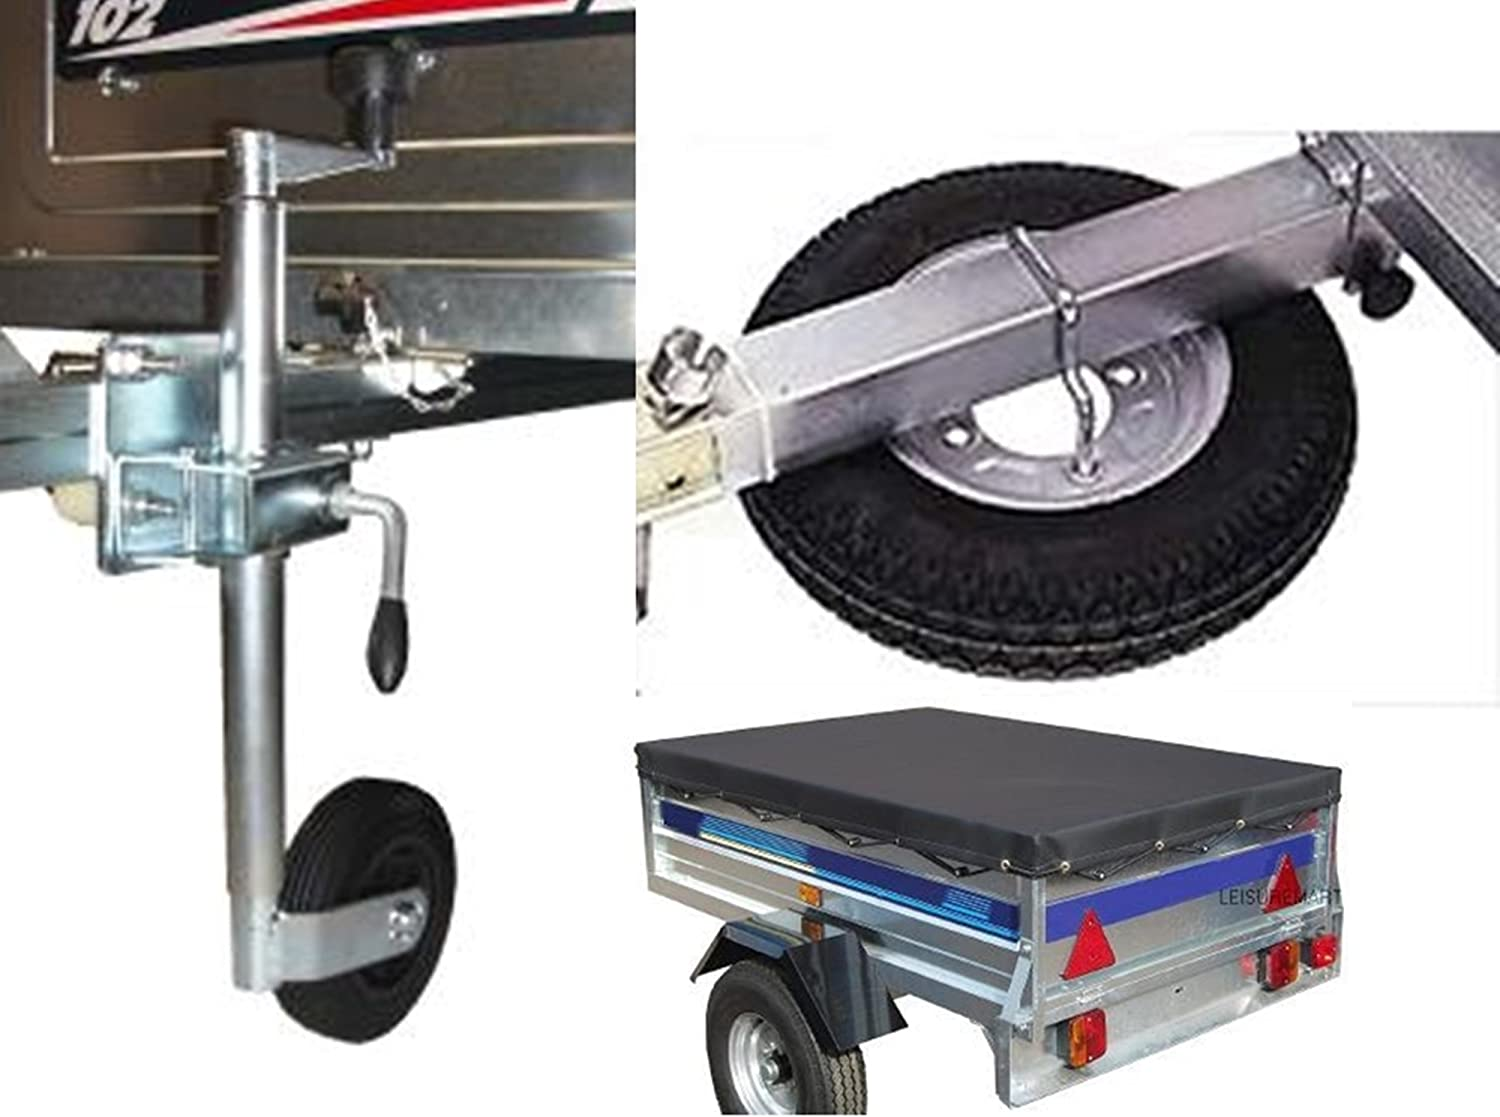 includes Spare wheel jockey wheel and fixing kit LMX1439 Trailer cover and spare wheel carrier Pt no leisure MART Accessory kit for Trailer Erde 102